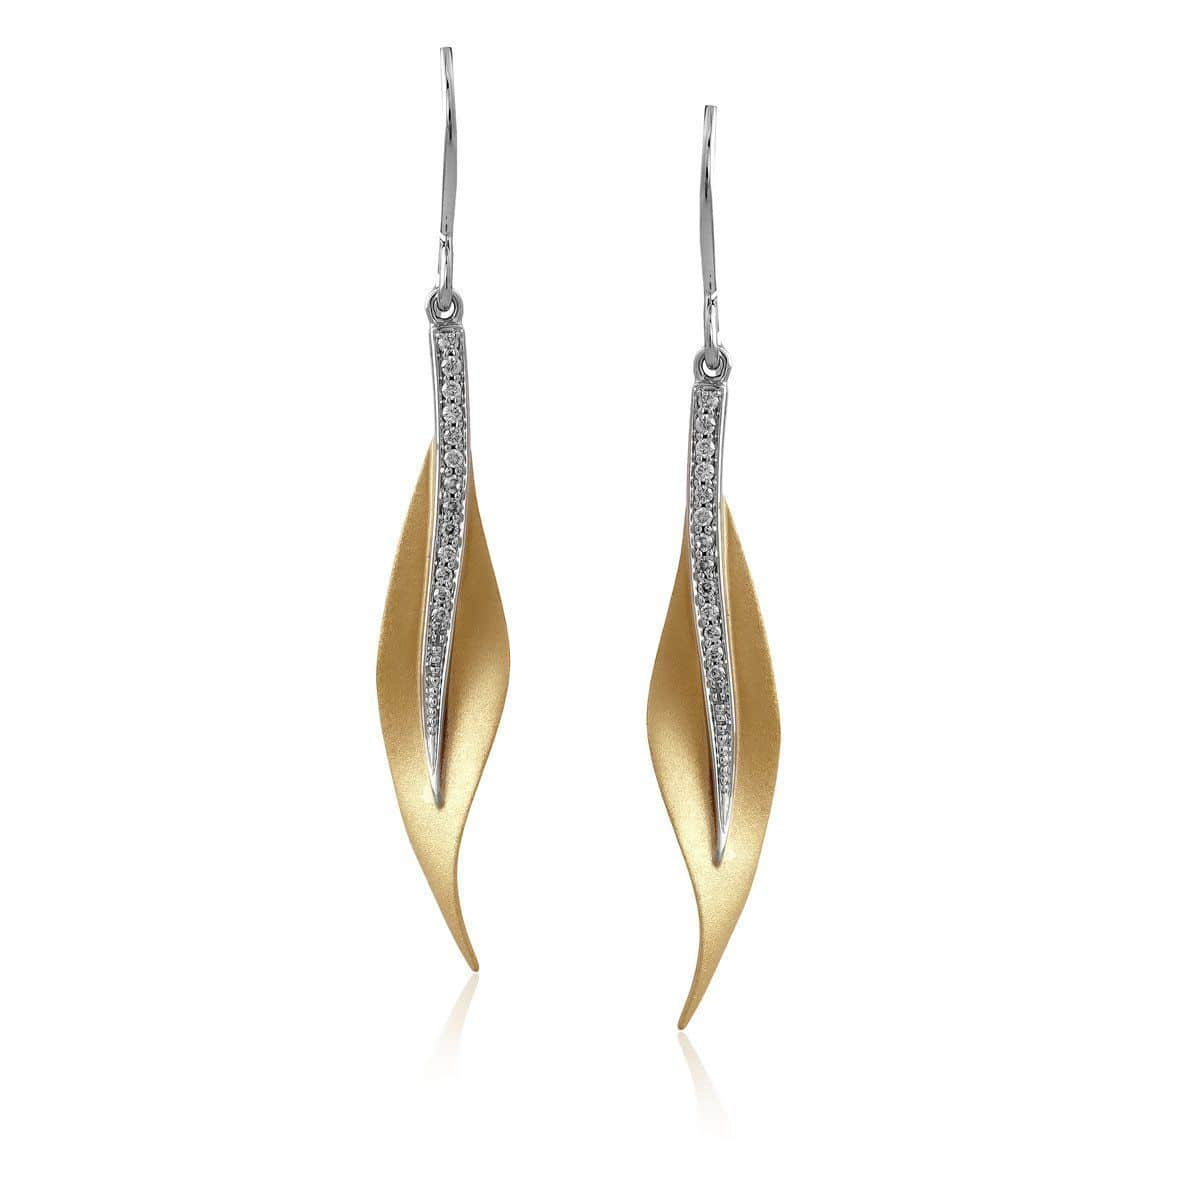 Yellow & White Gold Diamond Earrings - DE117-YW-Simon G.-Renee Taylor Gallery